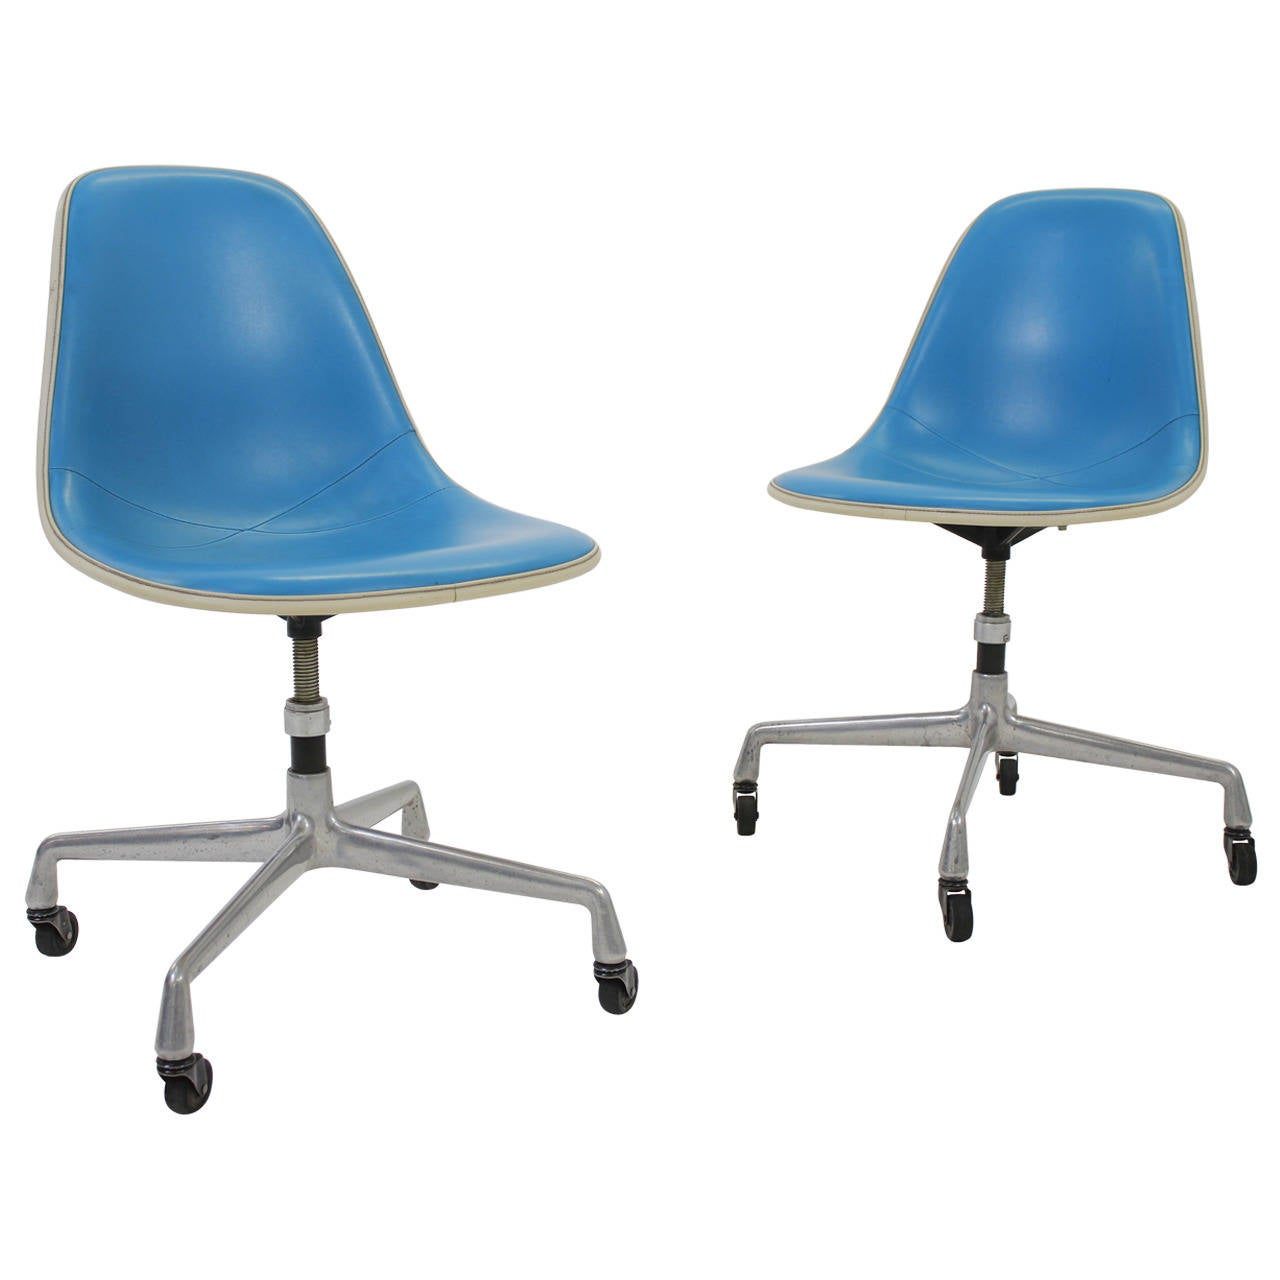 Rolling Desk Chairs Rare Herman Miller Adjustable Rolling Desk Chairs 1960s